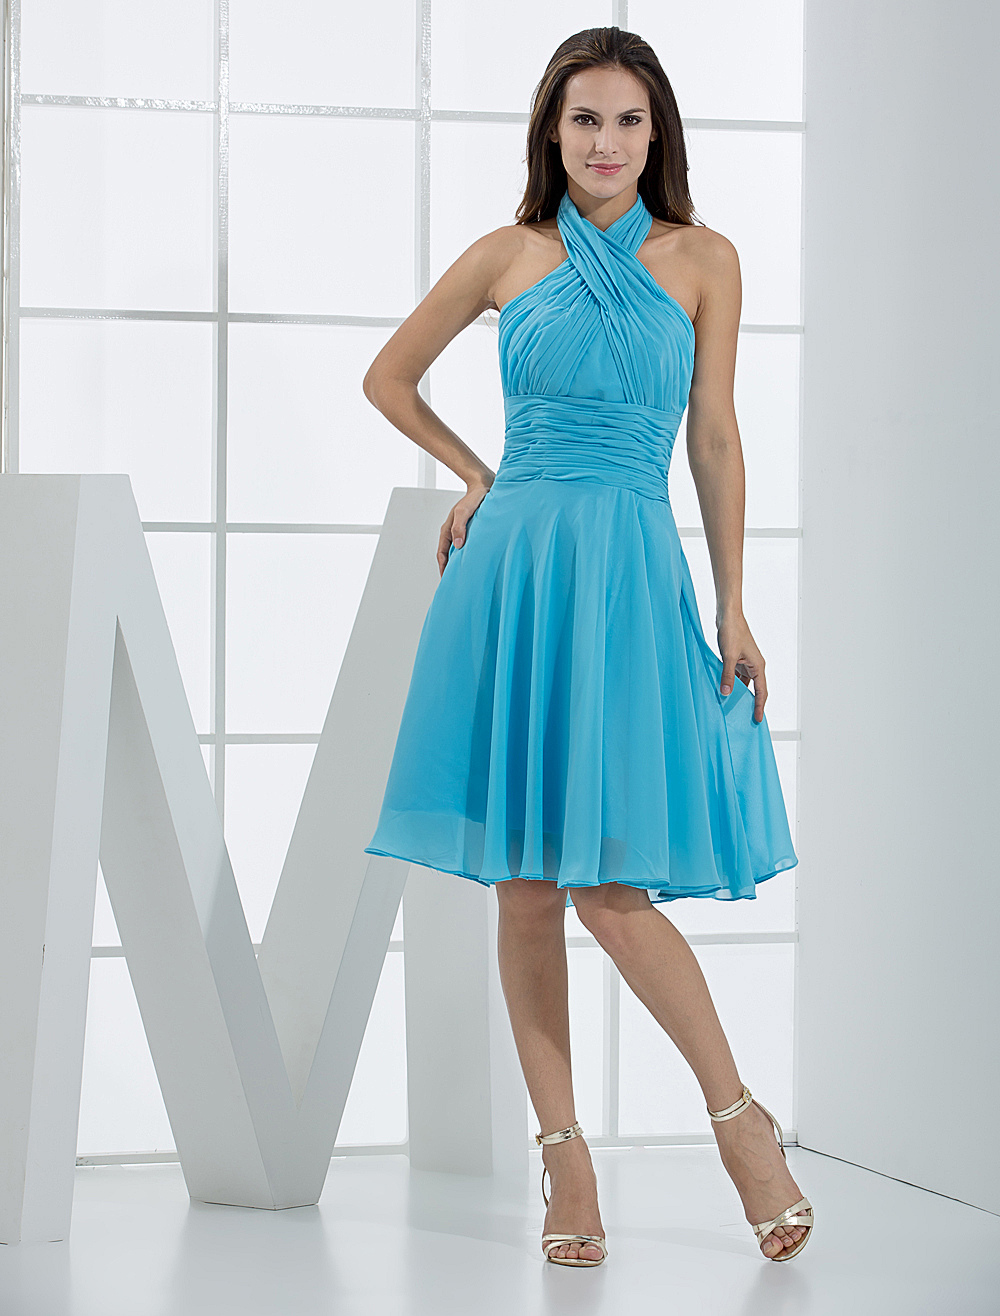 Short Bridesmaid Dress Halter Aqua Ruched A Line Knee Length Prom Dress